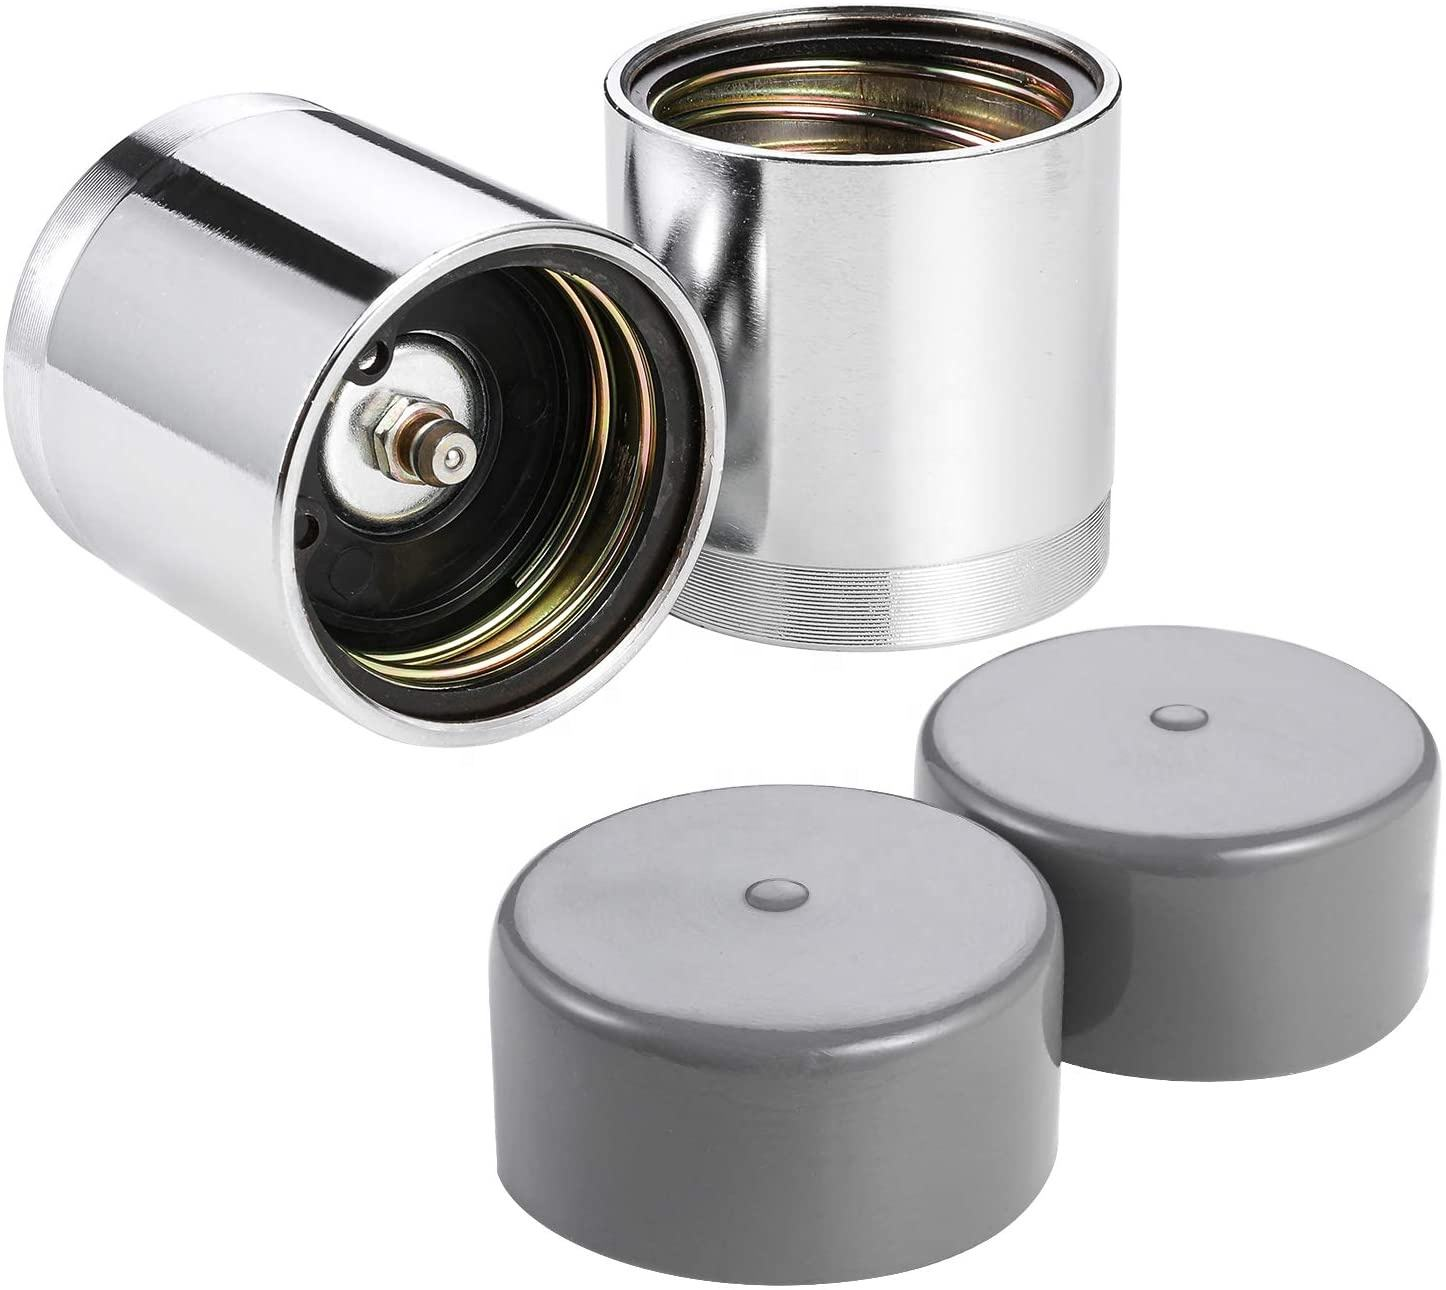 Wheel Bearing Buddy 1.98 Inch Bearing Protectors with Protective Bras for Trailer Boat